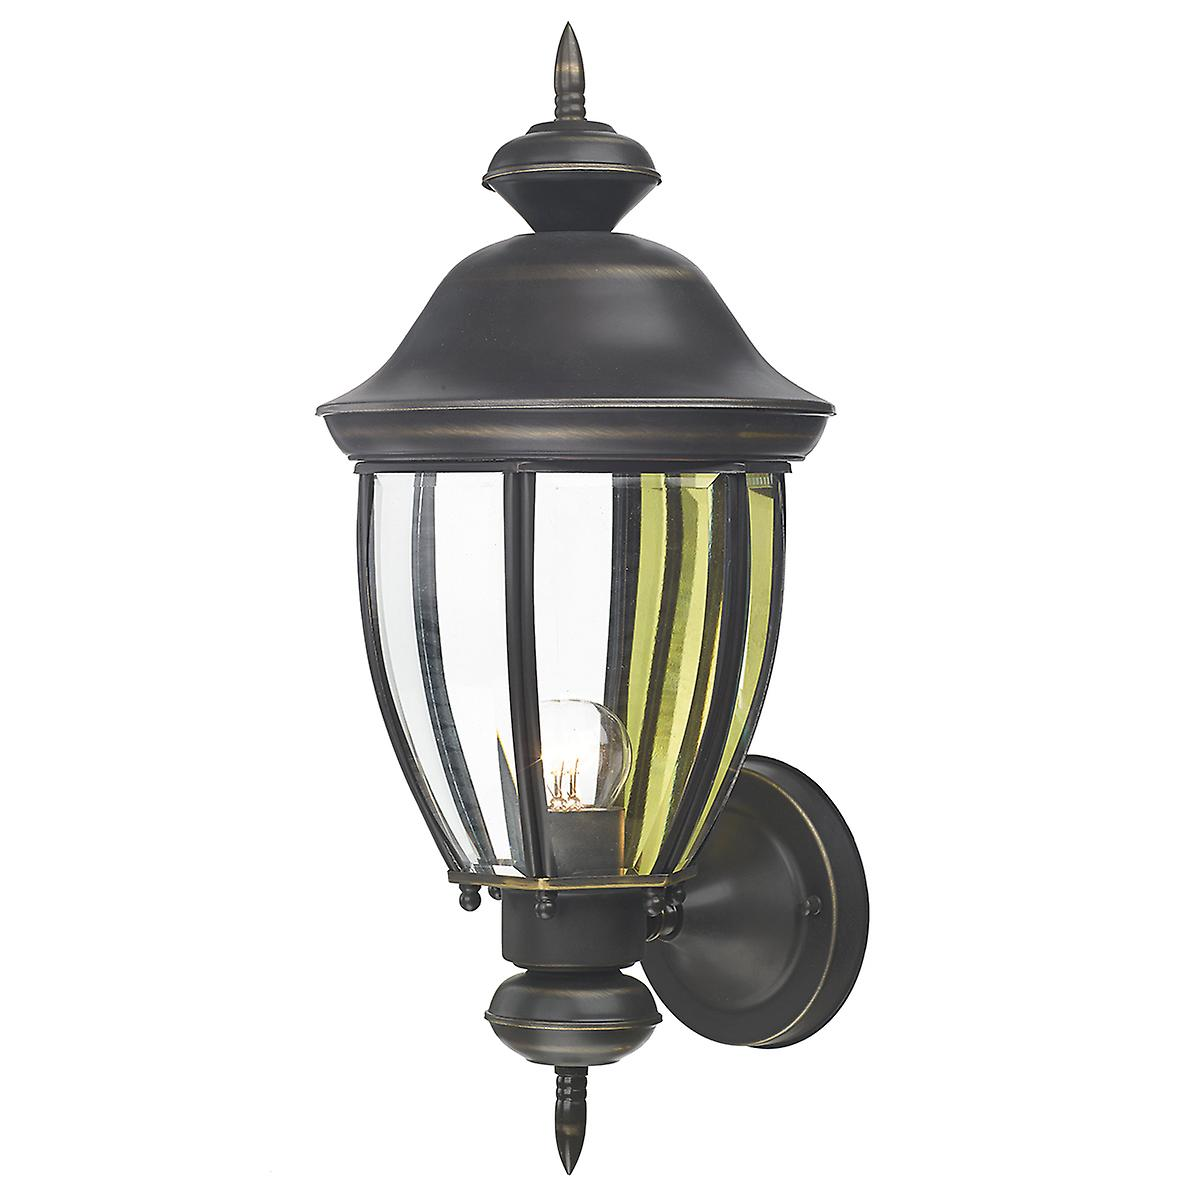 Dar LOD1640 Lodge Outdoor Wall Light Lantern Double Insulated